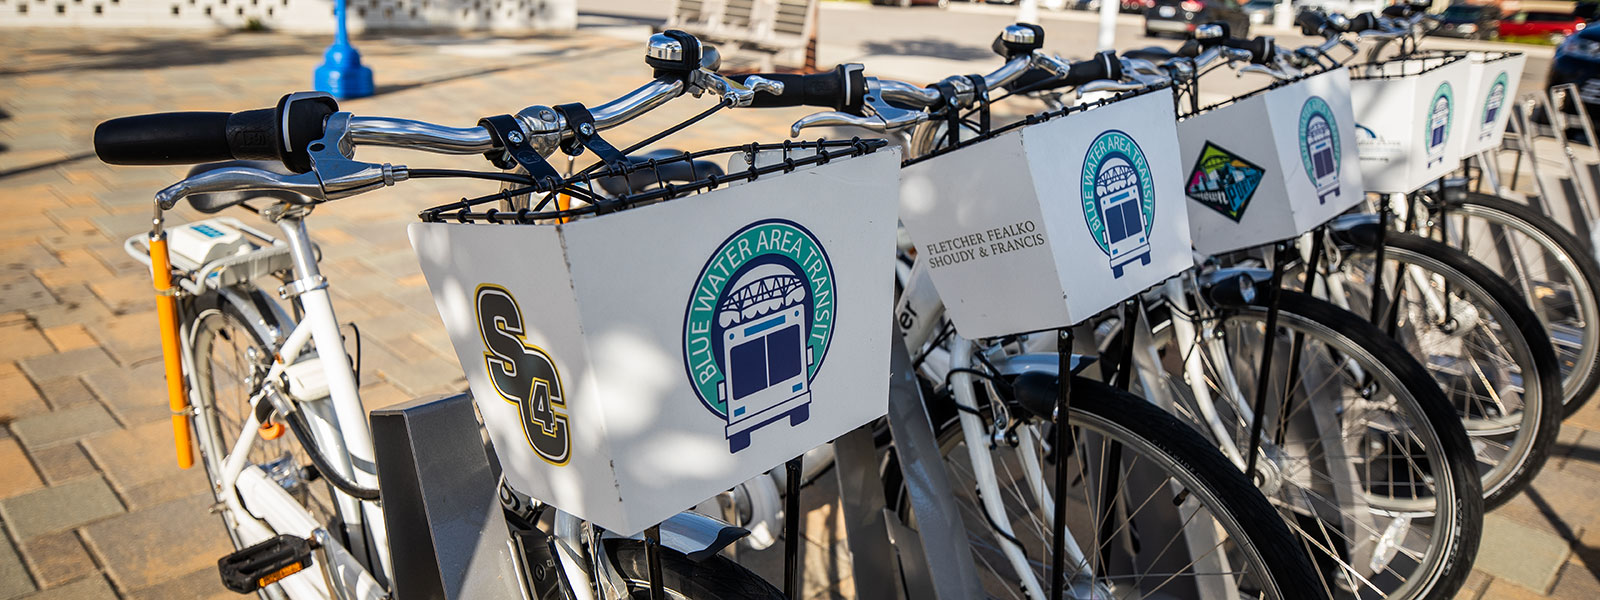 In addition to becoming more walkable, Port Huron is improving its bikeability. <span class='image-credits'>David Lewinski</span>